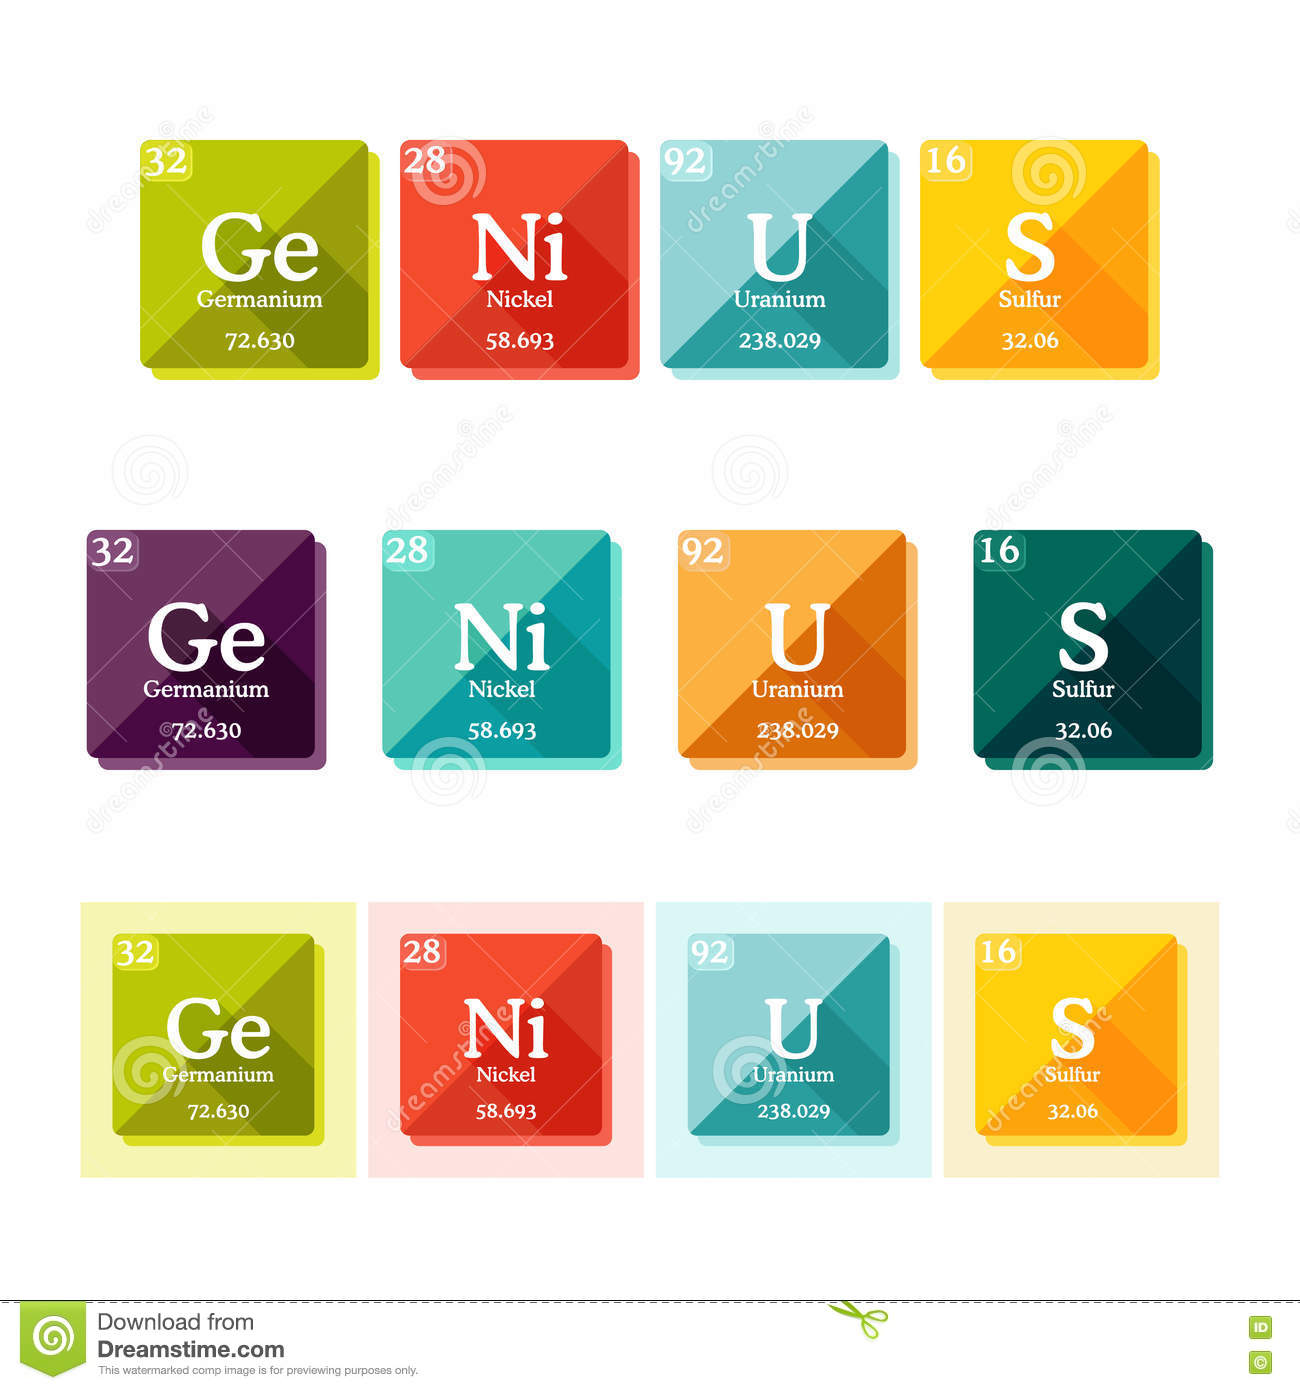 Periodic table word images periodic table images word genius formed of the elements of periodic table stock vector word genius formed of the gamestrikefo Choice Image